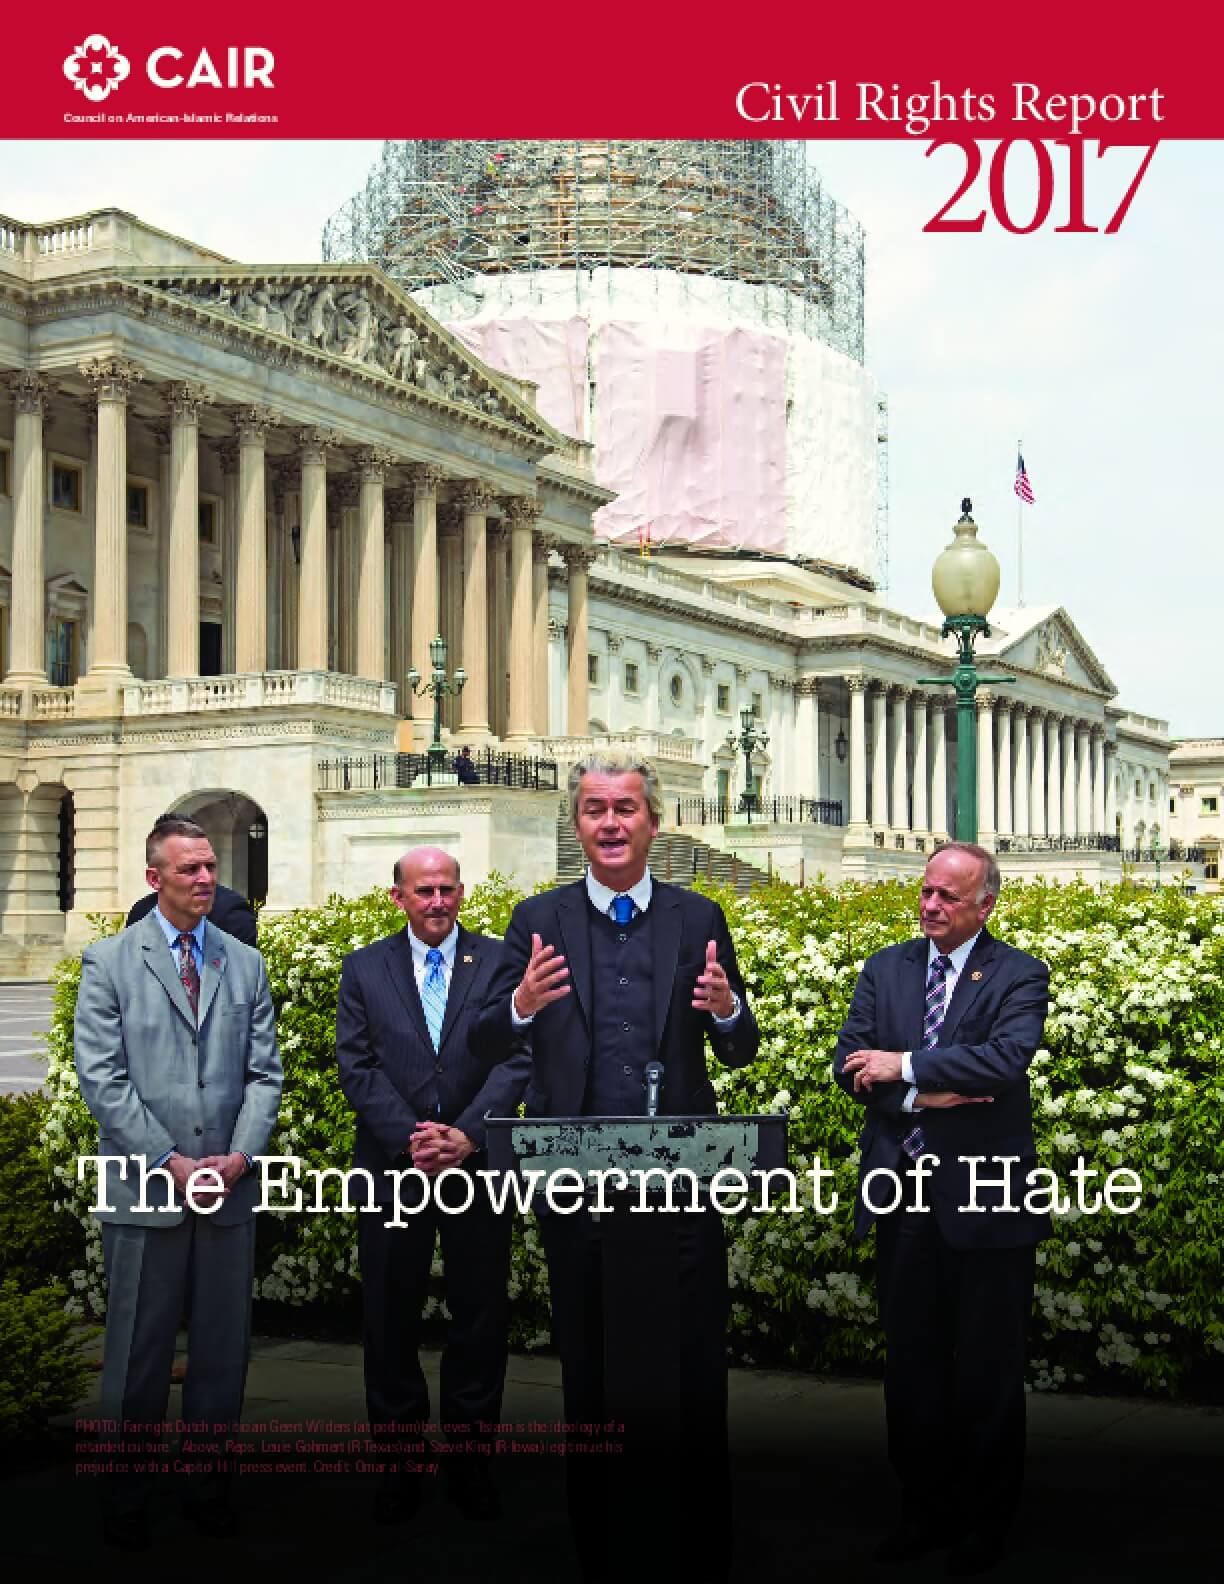 The Empowerment of Hate